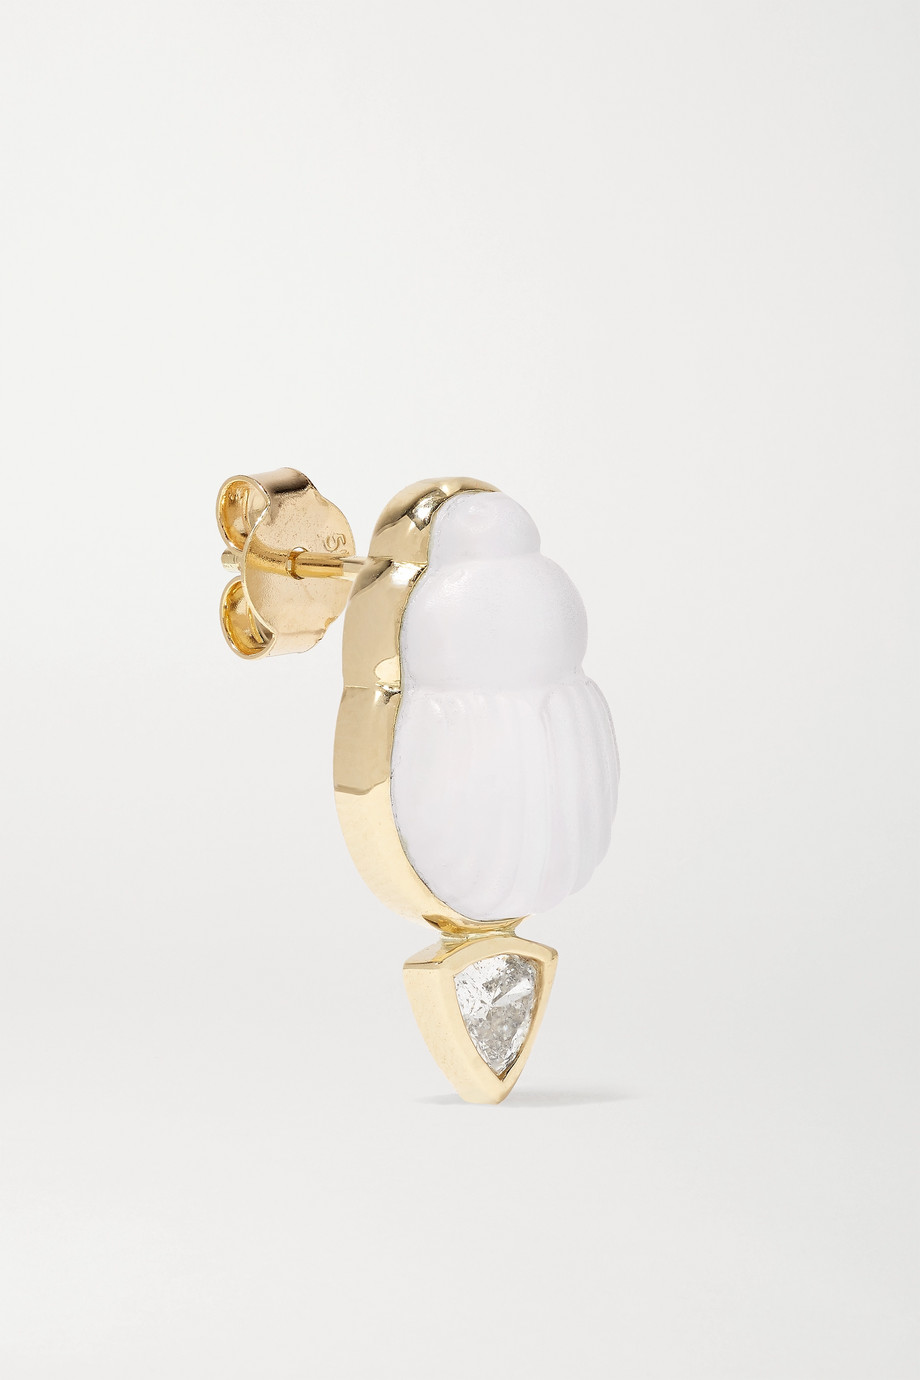 Lito Bianca 14-karat gold, mother-of-pearl and diamond earrings